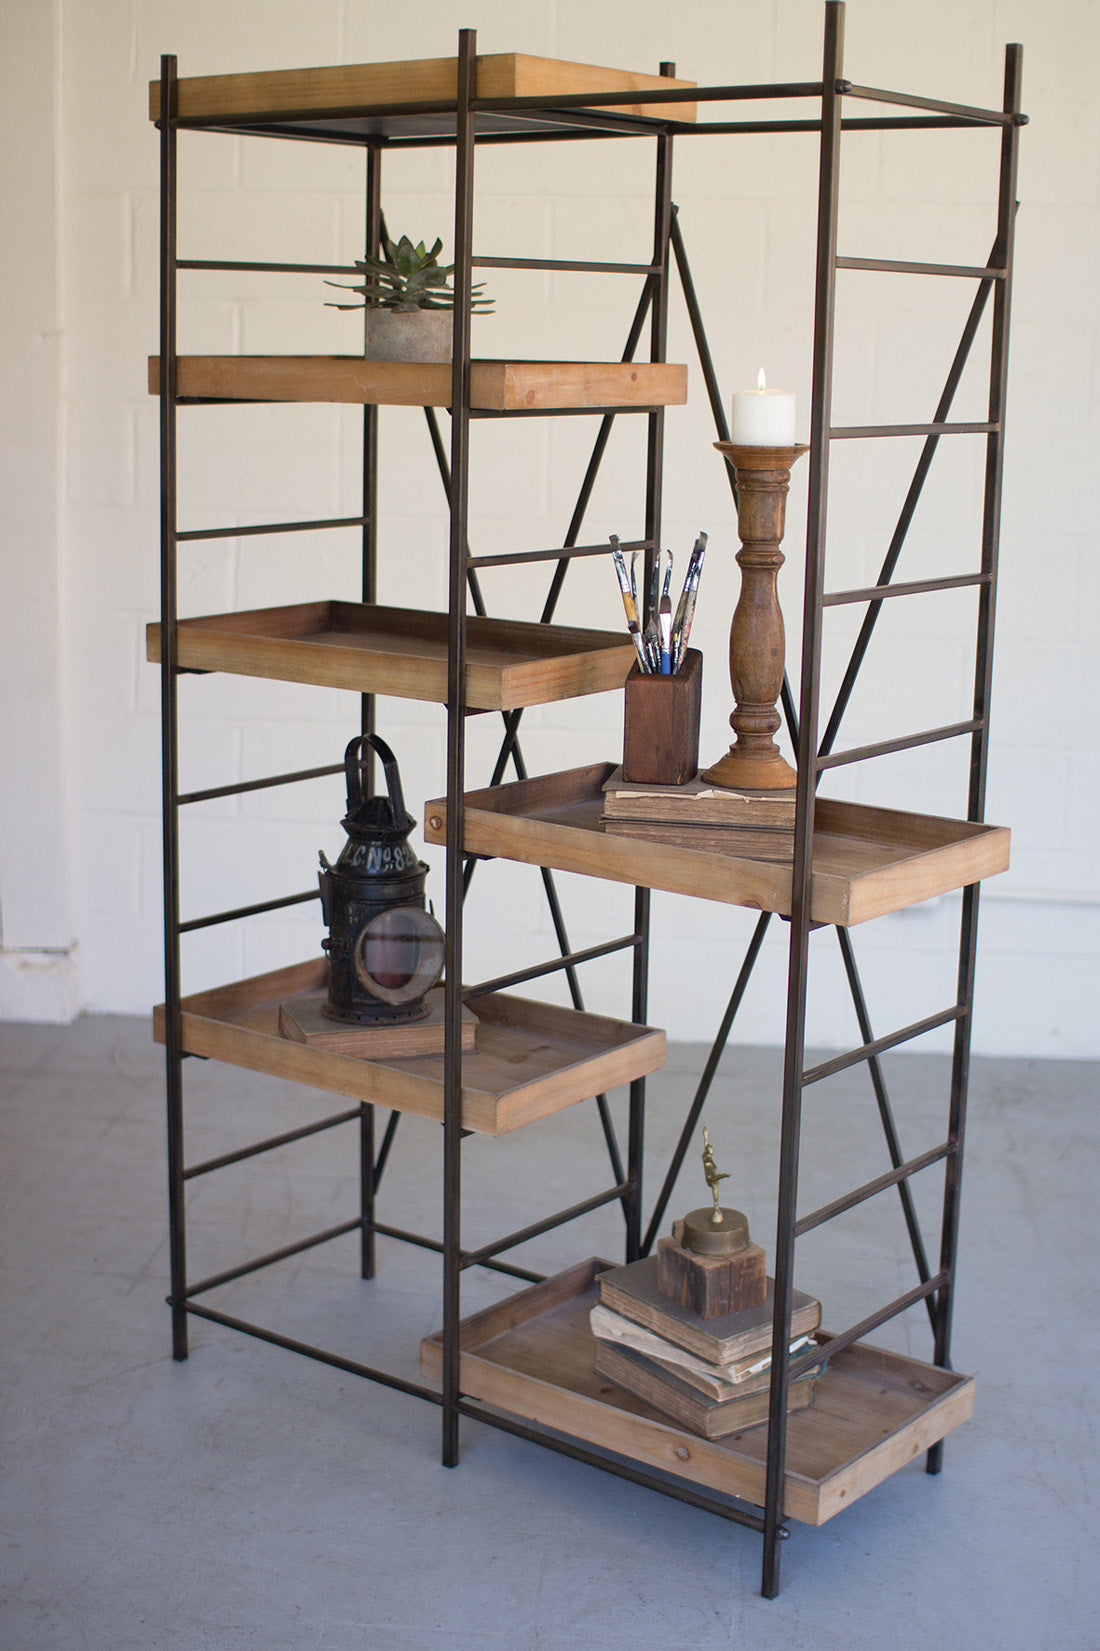 FREE SHIPPING - Modern farmhouse-wood and metal shelves